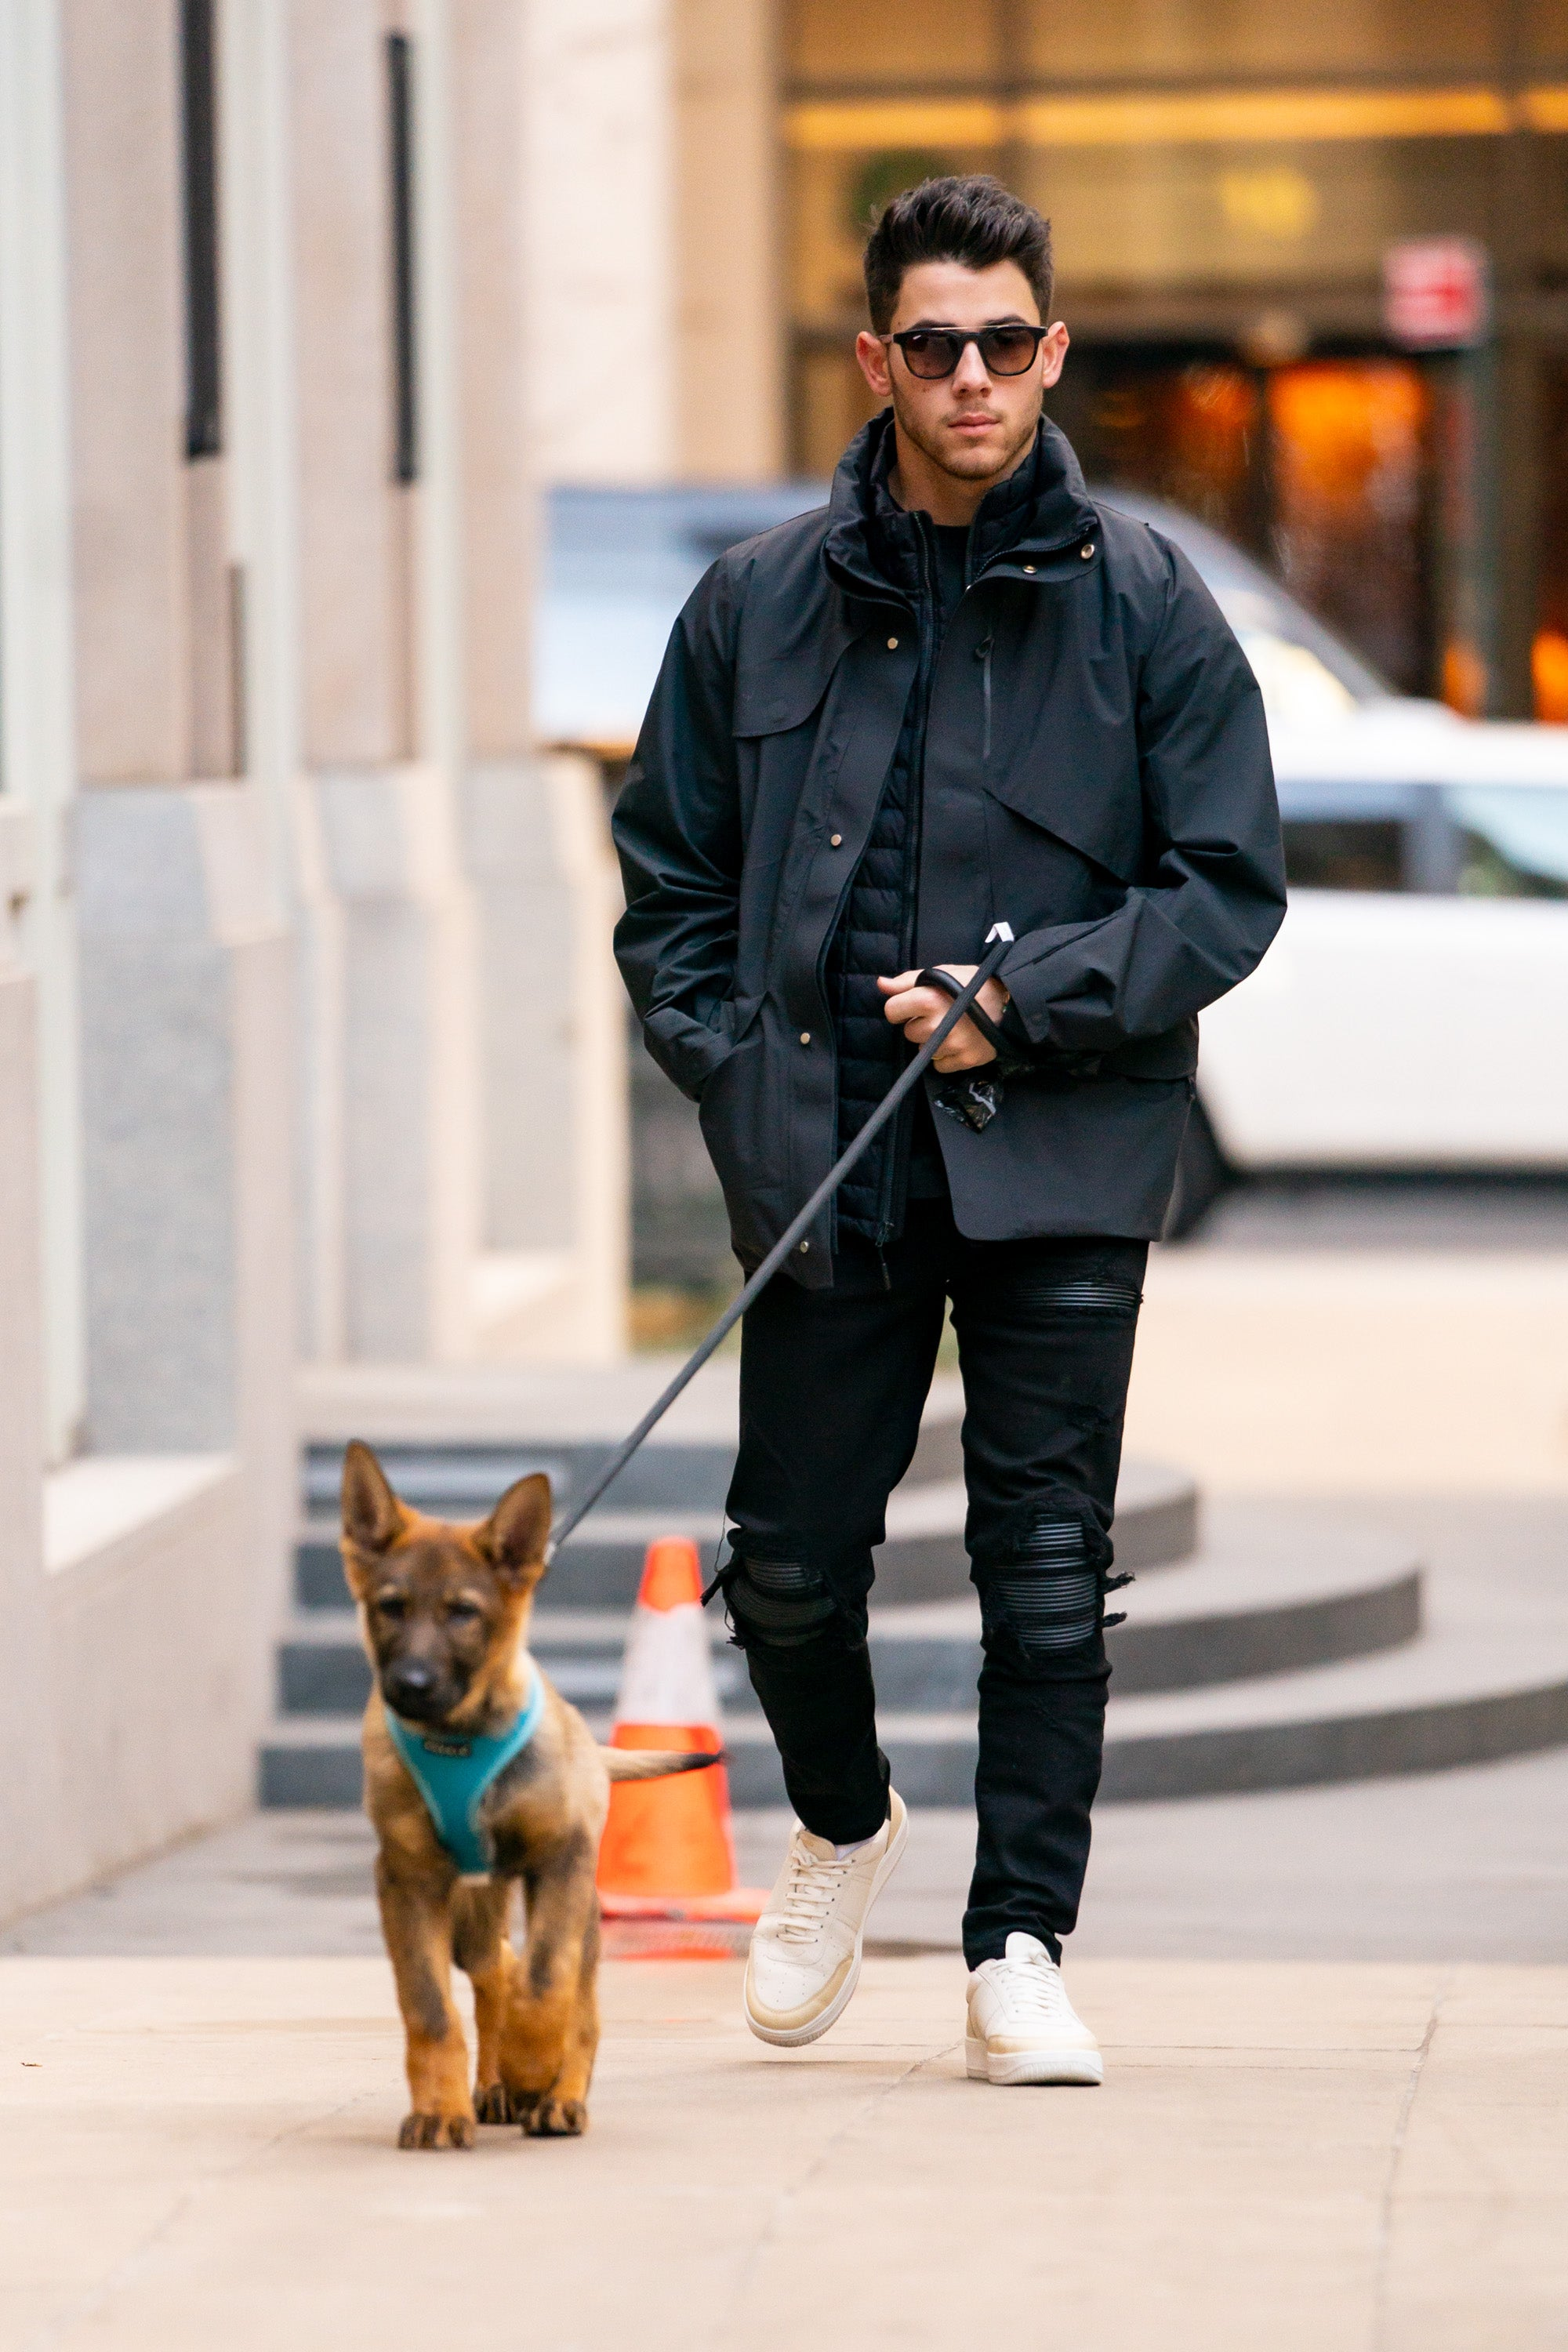 Nick Jonas And His New Dog Gino Are The Cutest Duo While Out In Nyc Entertainment Tonight